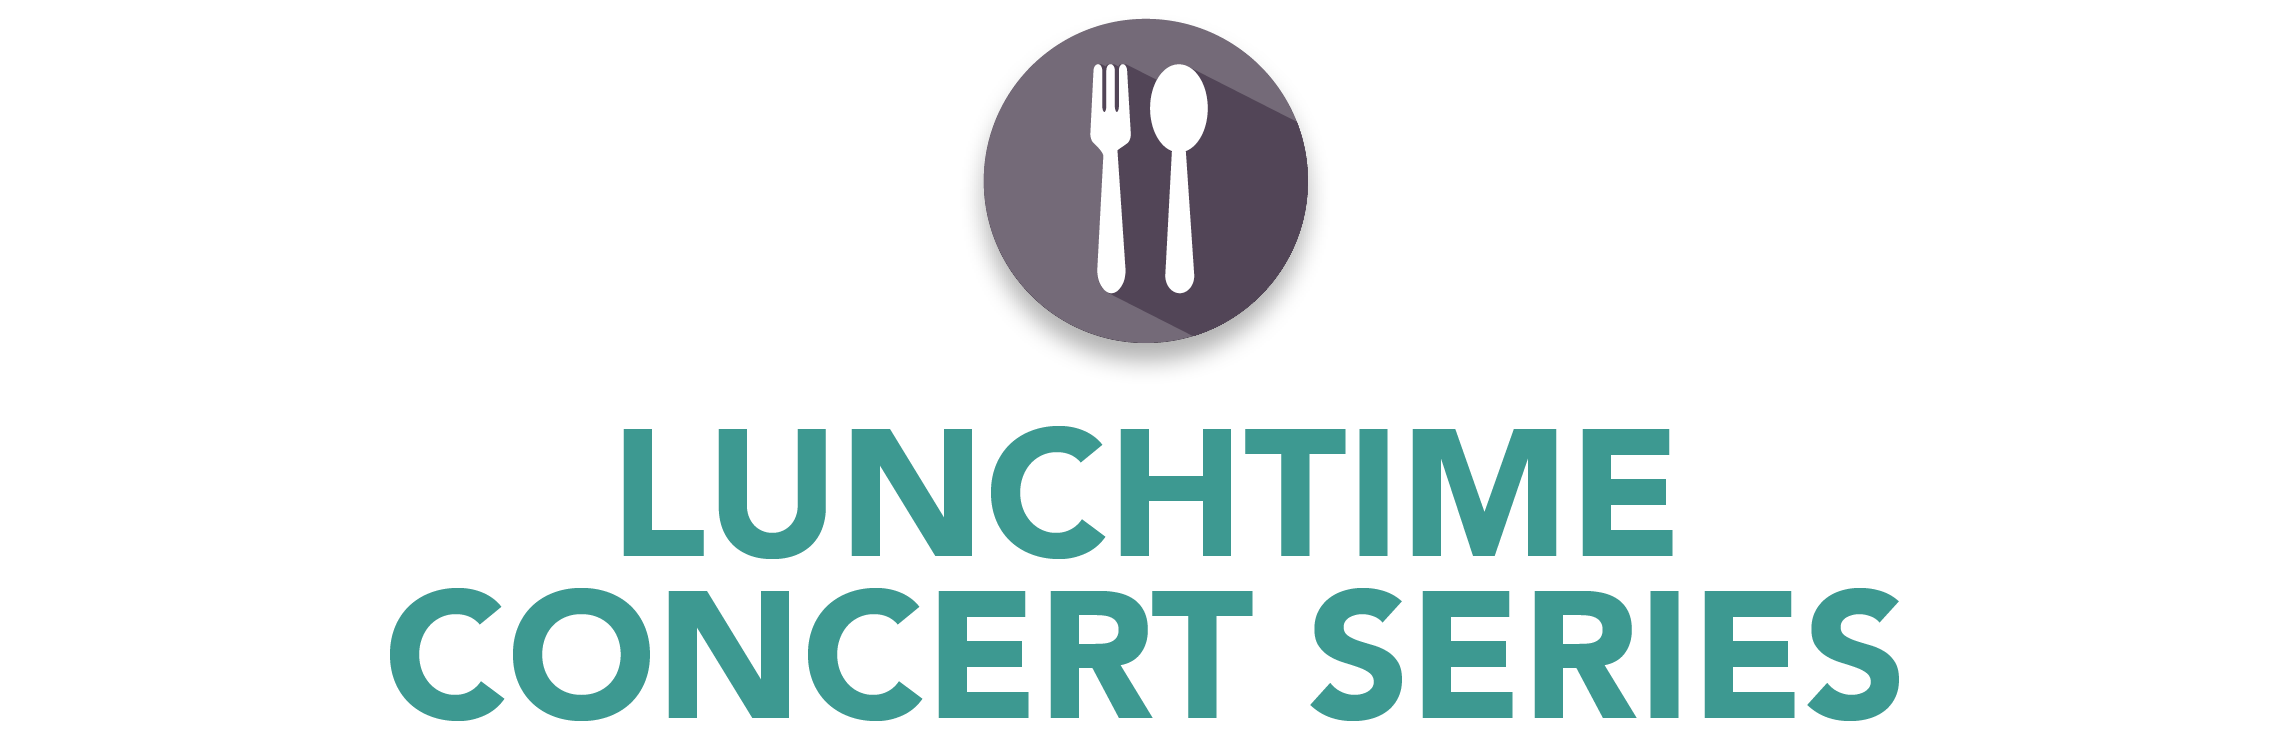 Lunchtime Concert Series.png